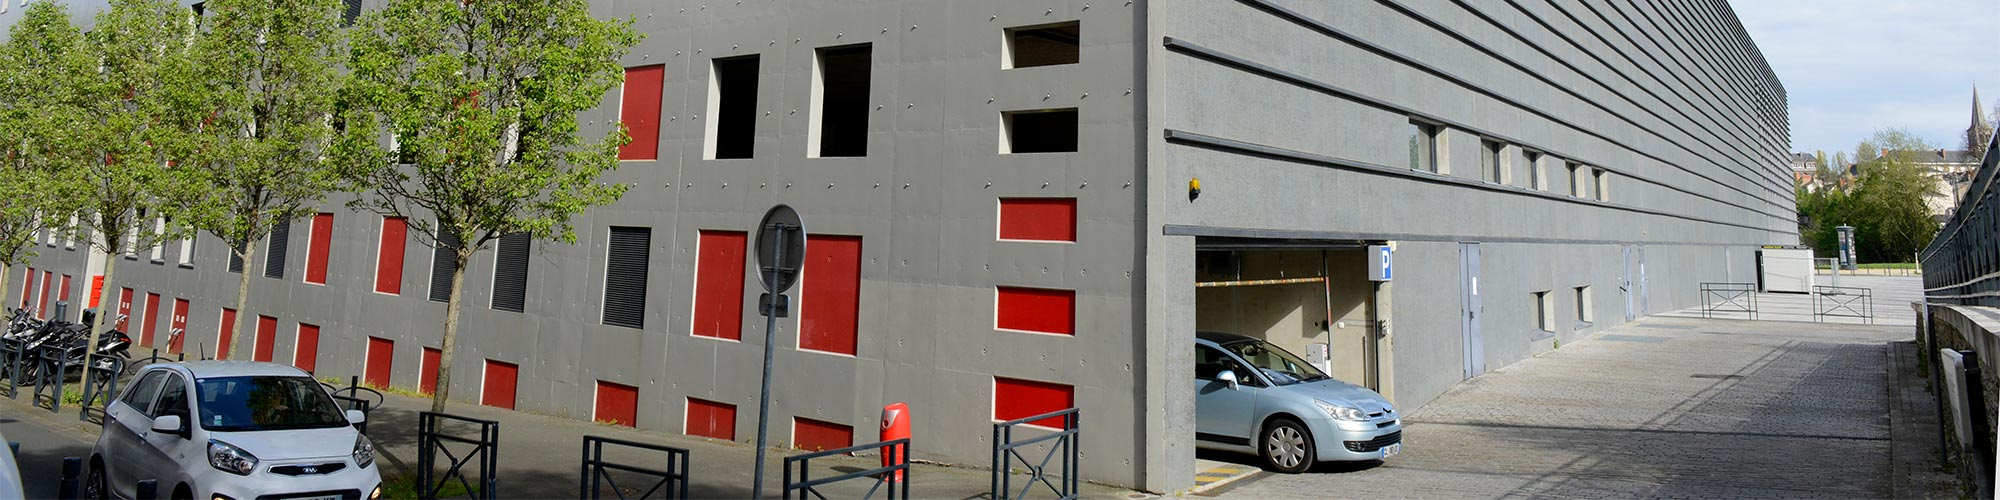 parking-le-quai-angers